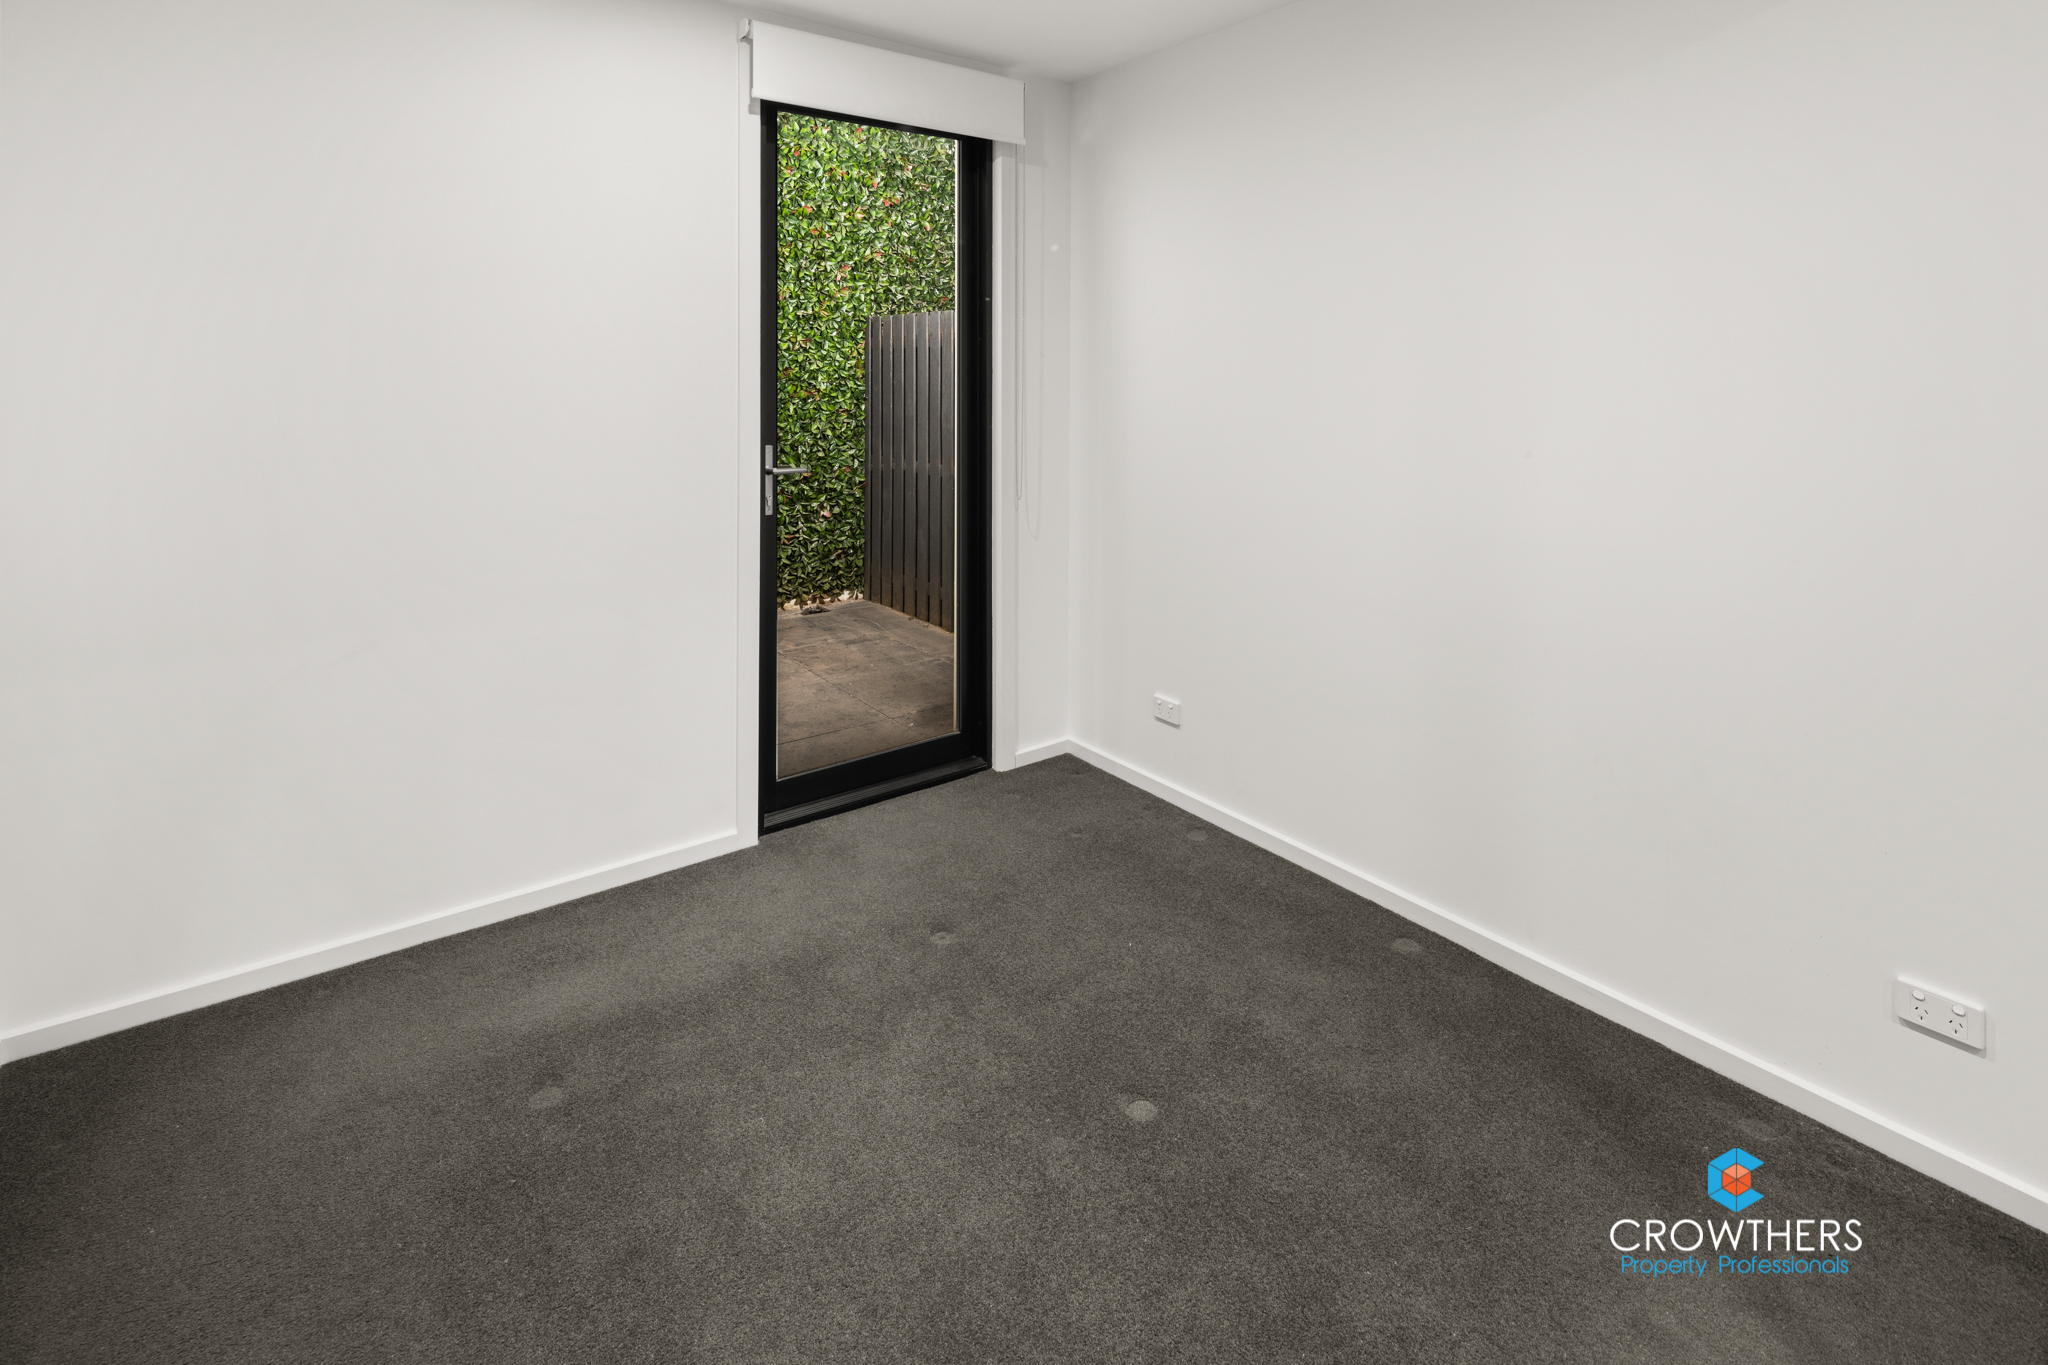 Photo: Photox - Canberra Photography Services